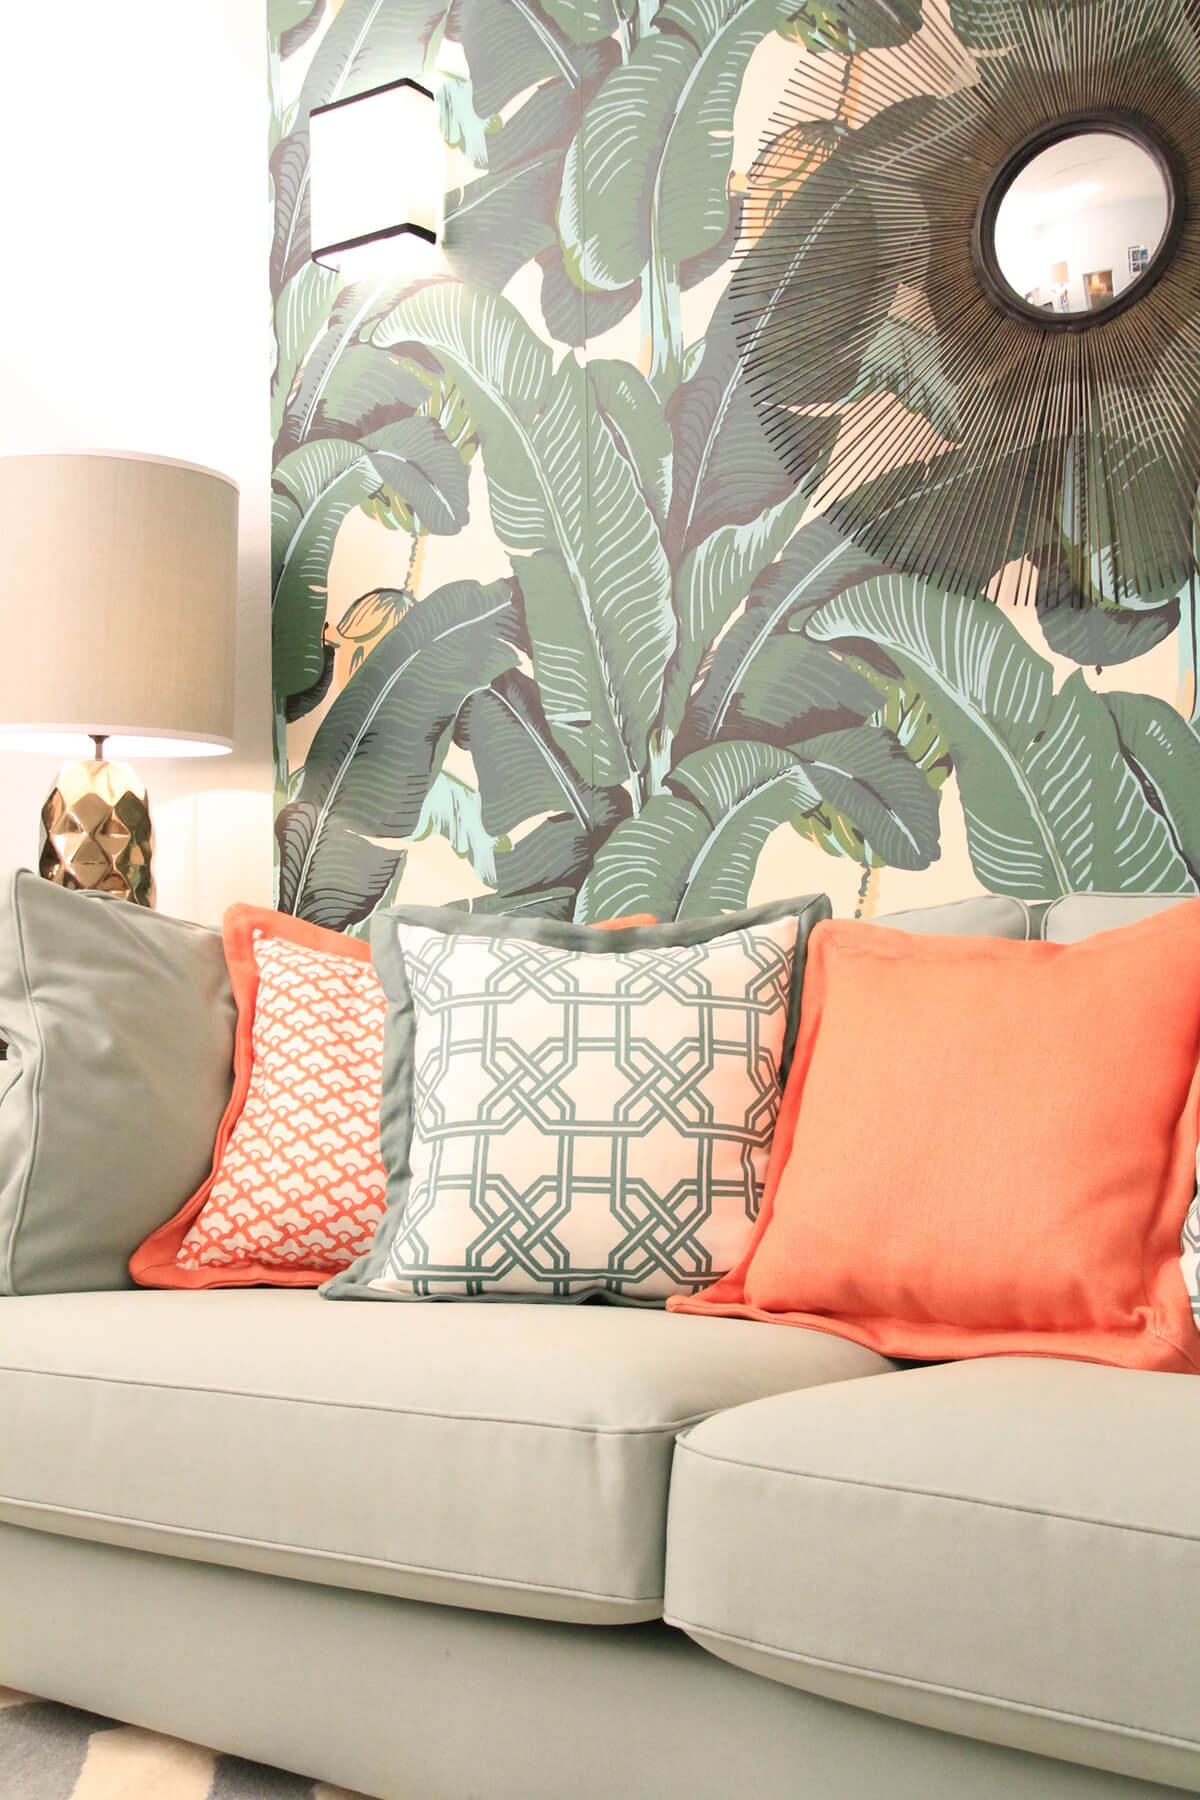 Banana Leaf Wallpaper and a Comfy Couch